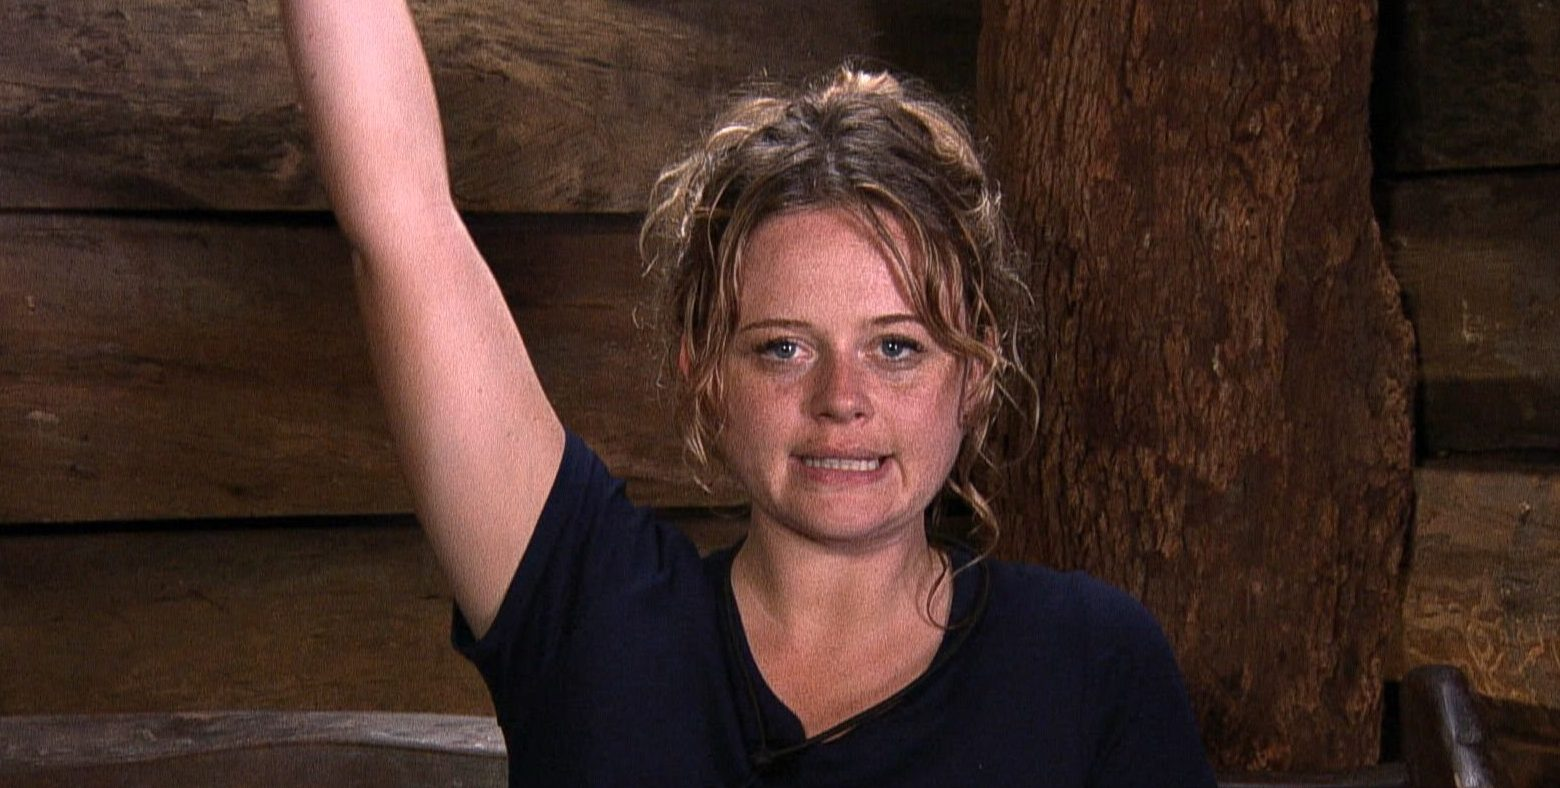 Emily Atack reminds fans of Amir Khan's 'Strawberry-gate' on I'm A Celebrity as she steals a chilli